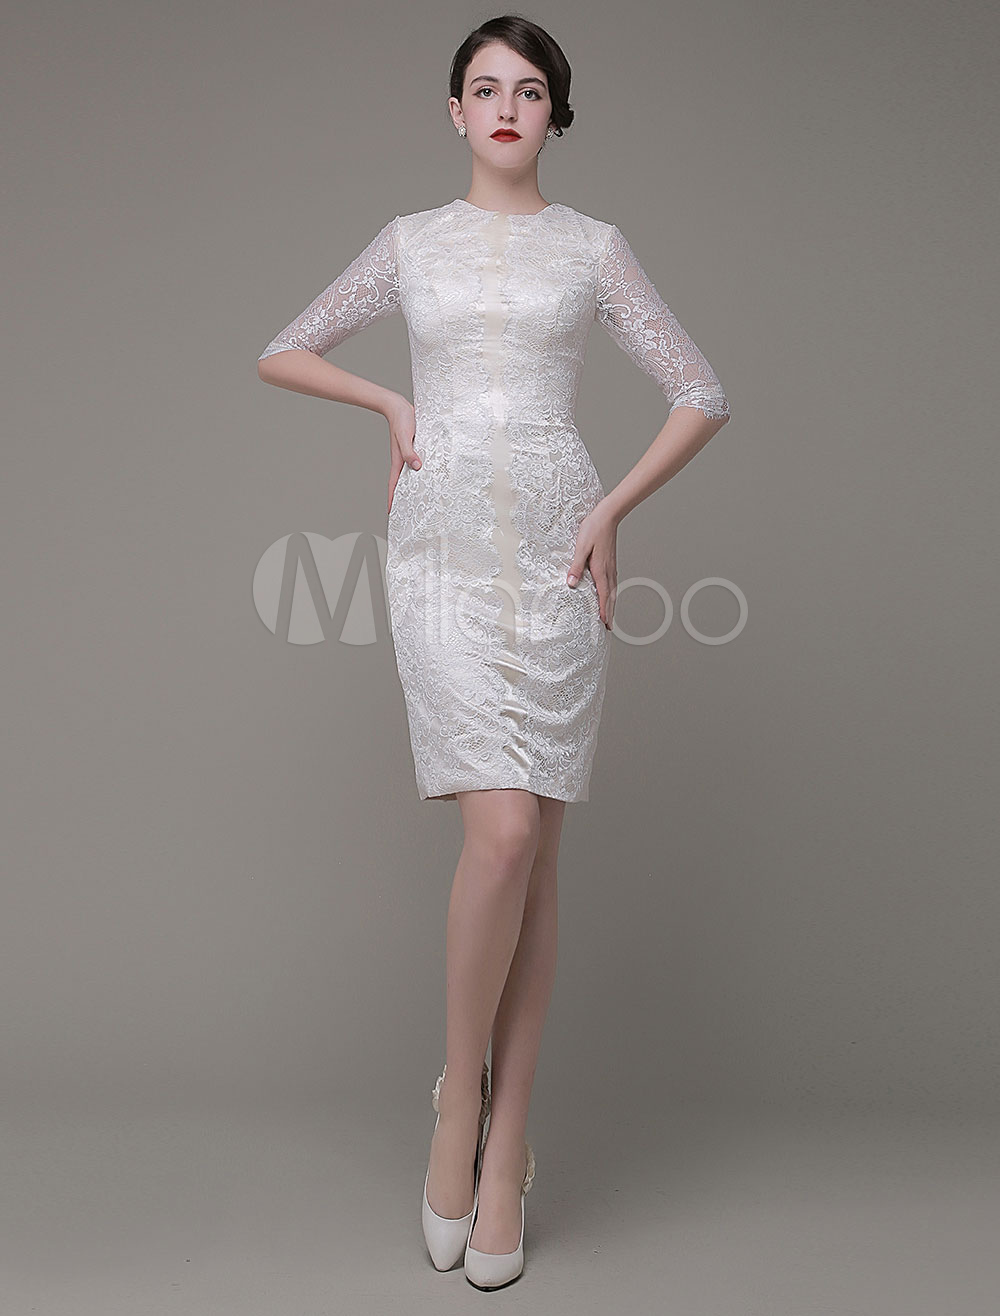 Buy Sheath Mother Of The Bride Dresses Jewel Knee-Length Lace Party Dress Wedding Guest Dress Milanoo for $111.99 in Milanoo store